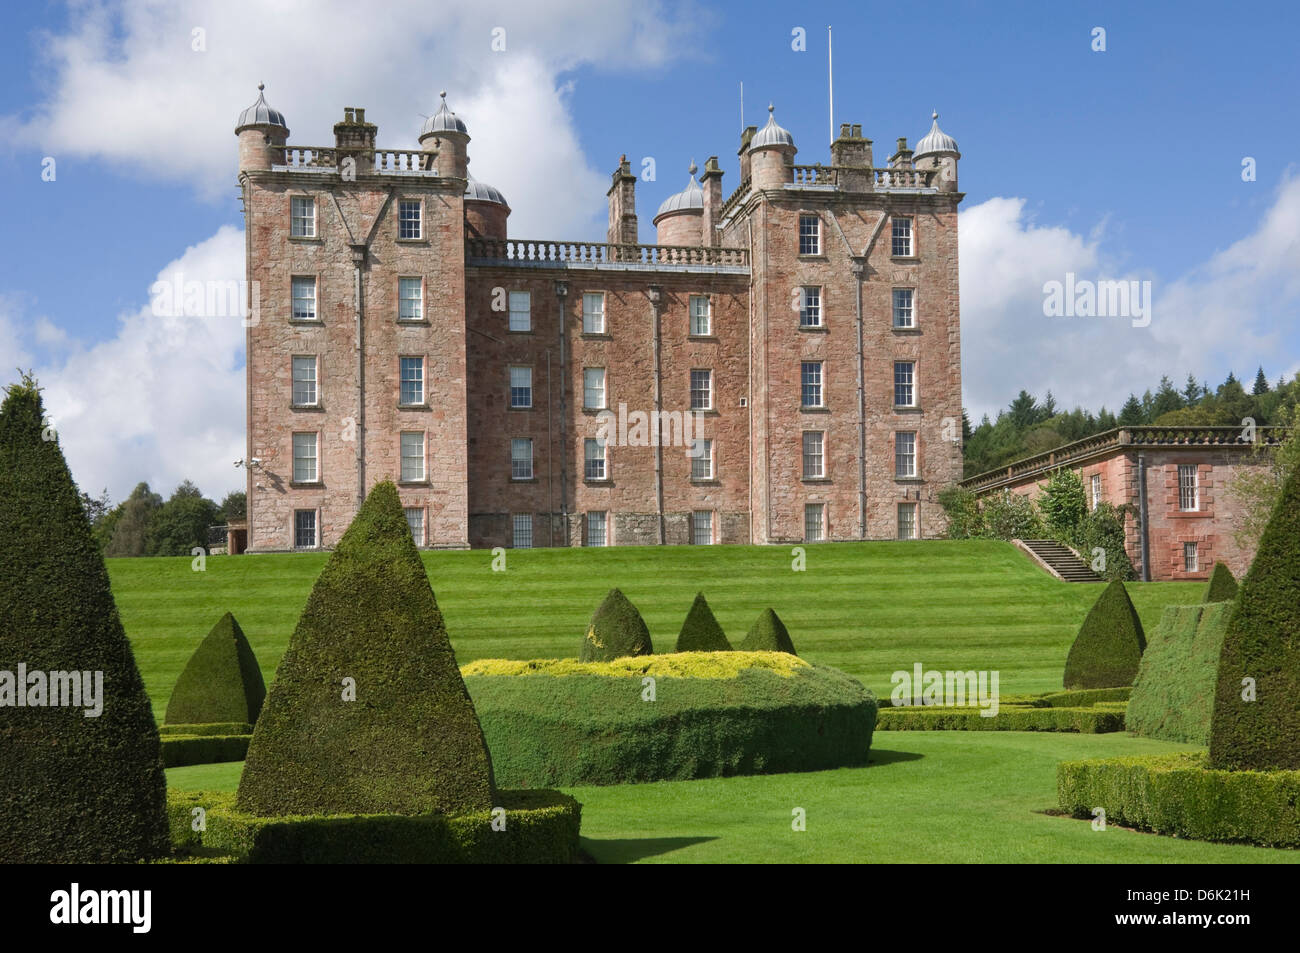 The Topiary Garden at the The Pink Palace built by the 1st Duke of Queensberry, Dumfries and Galloway, Scotland, - Stock Image